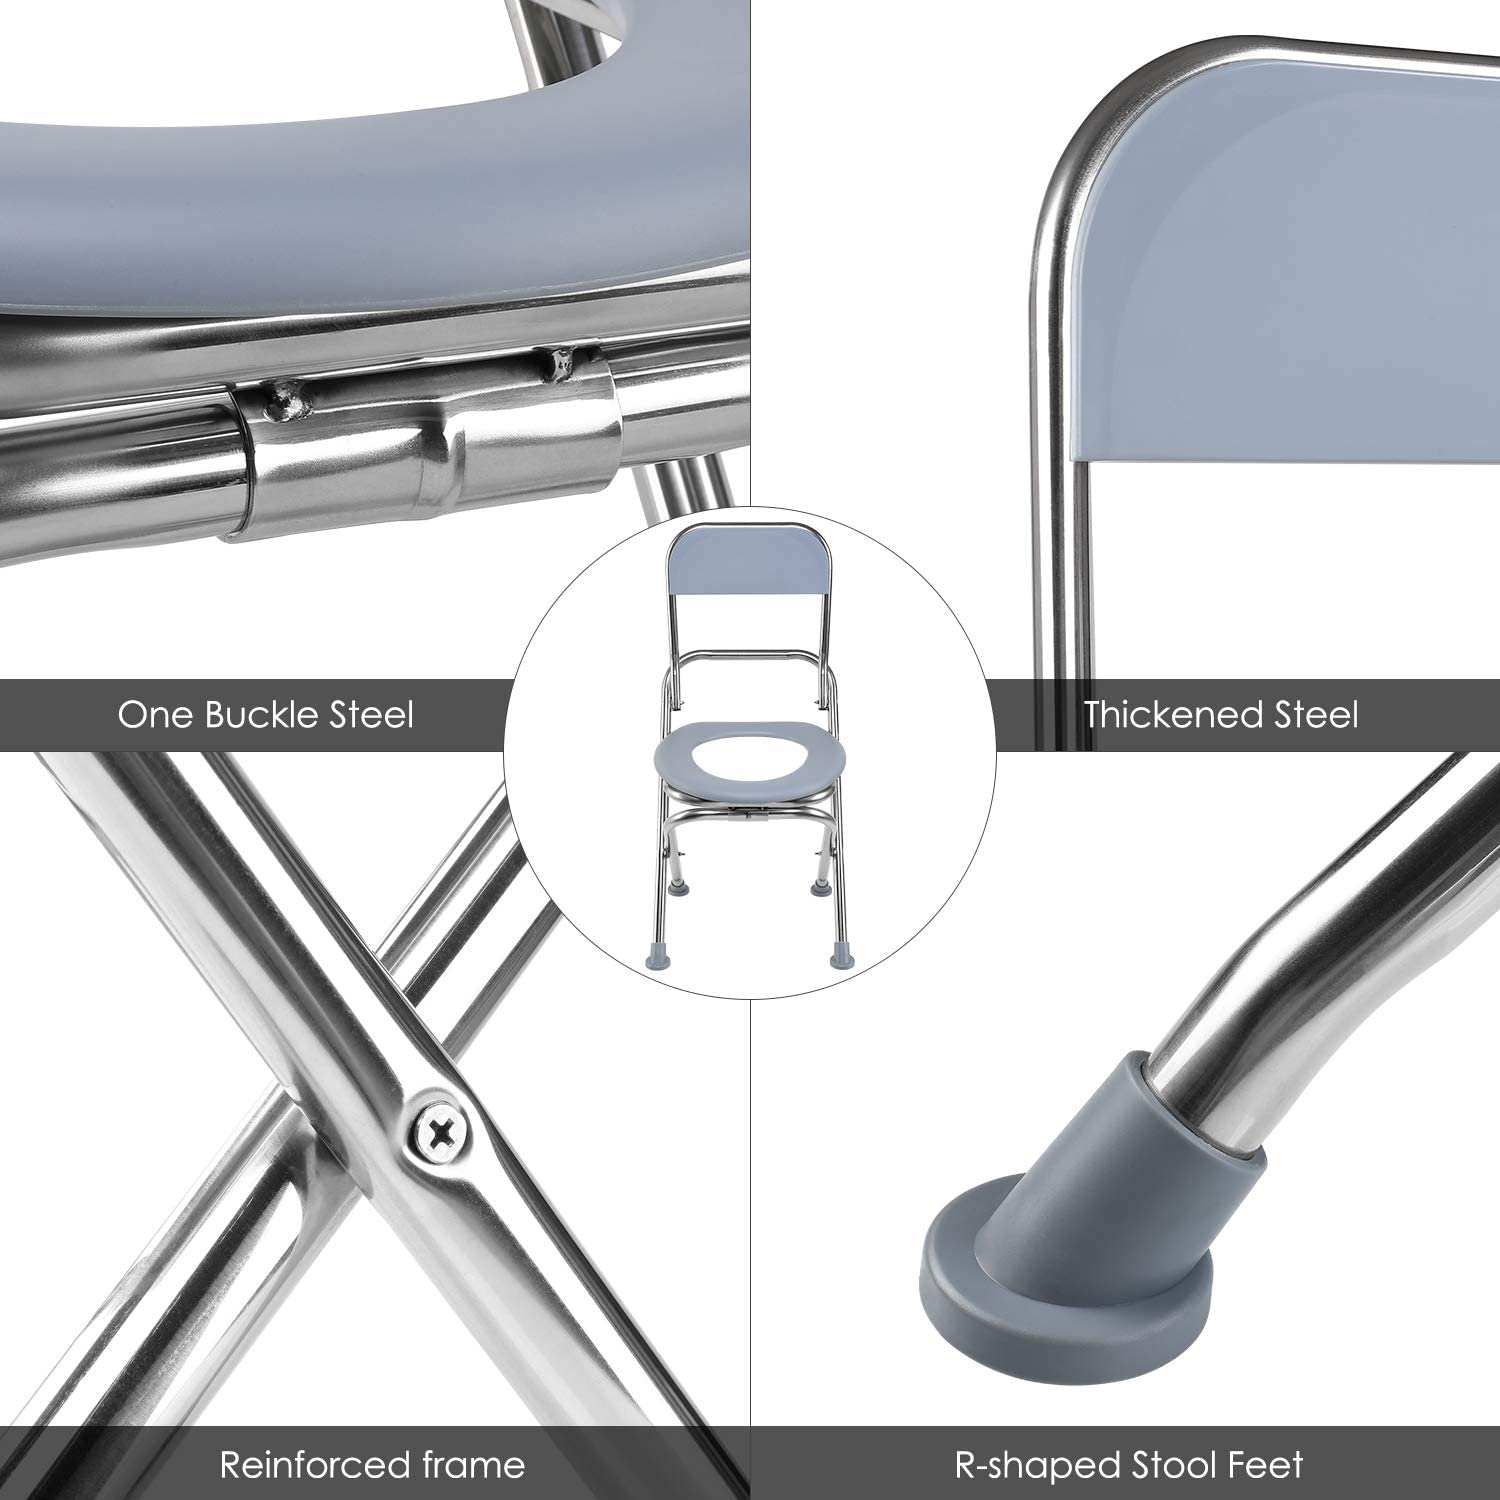 Trips. Hiking Stainless Steel Bedside Commode Chair Perfect for Camping VETIN Folding Commode Chair Portable Toilet Seat